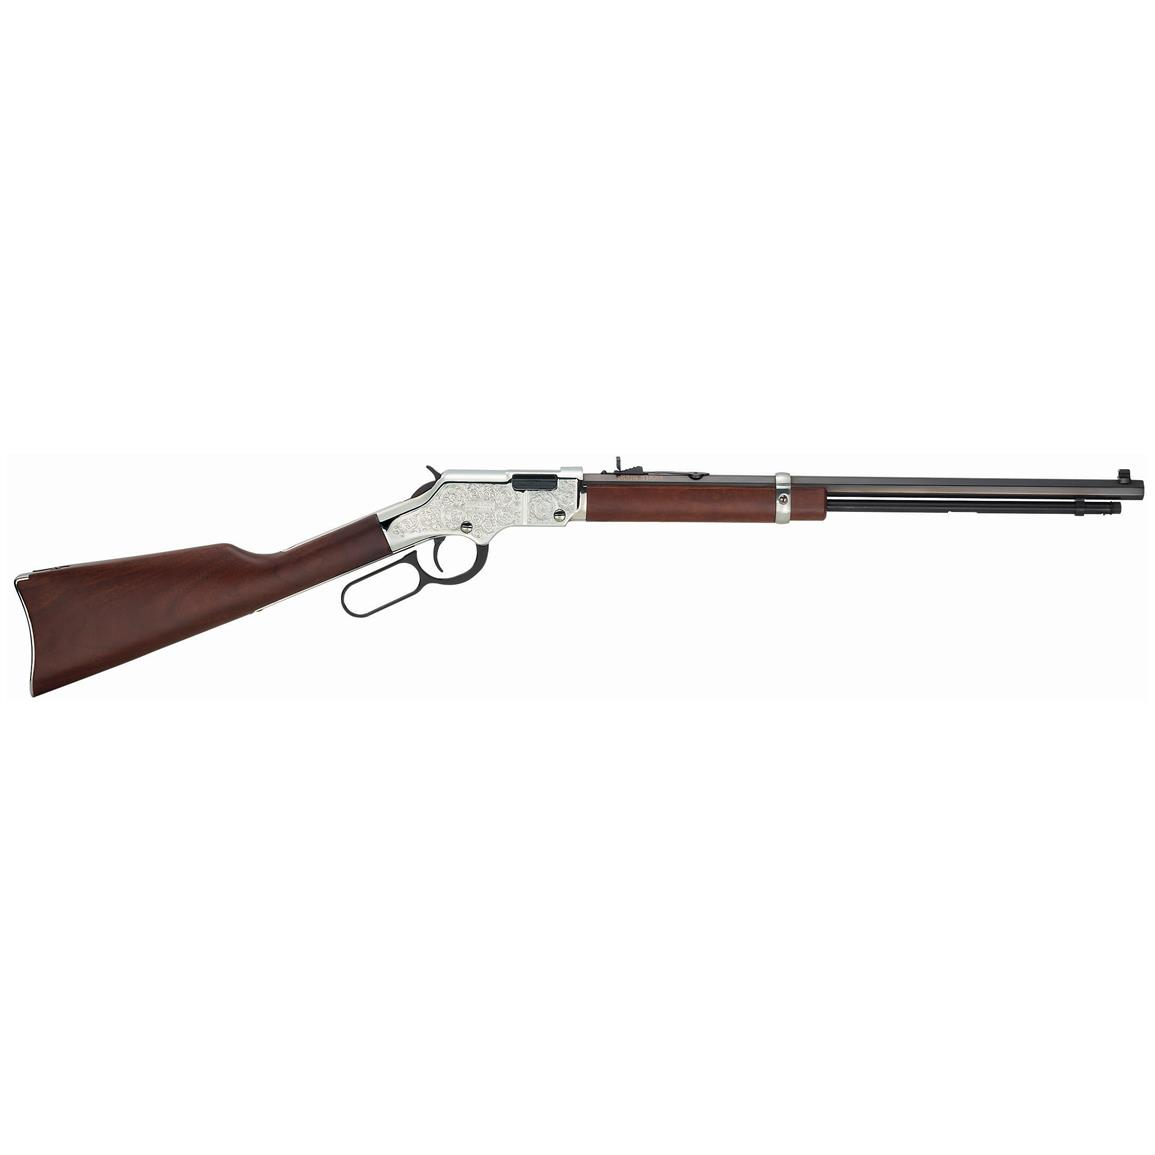 "Henry Big Boy Deluxe 3rd, Lever Action, .45 Colt, 20"" Barrel, 10+1 Rounds"